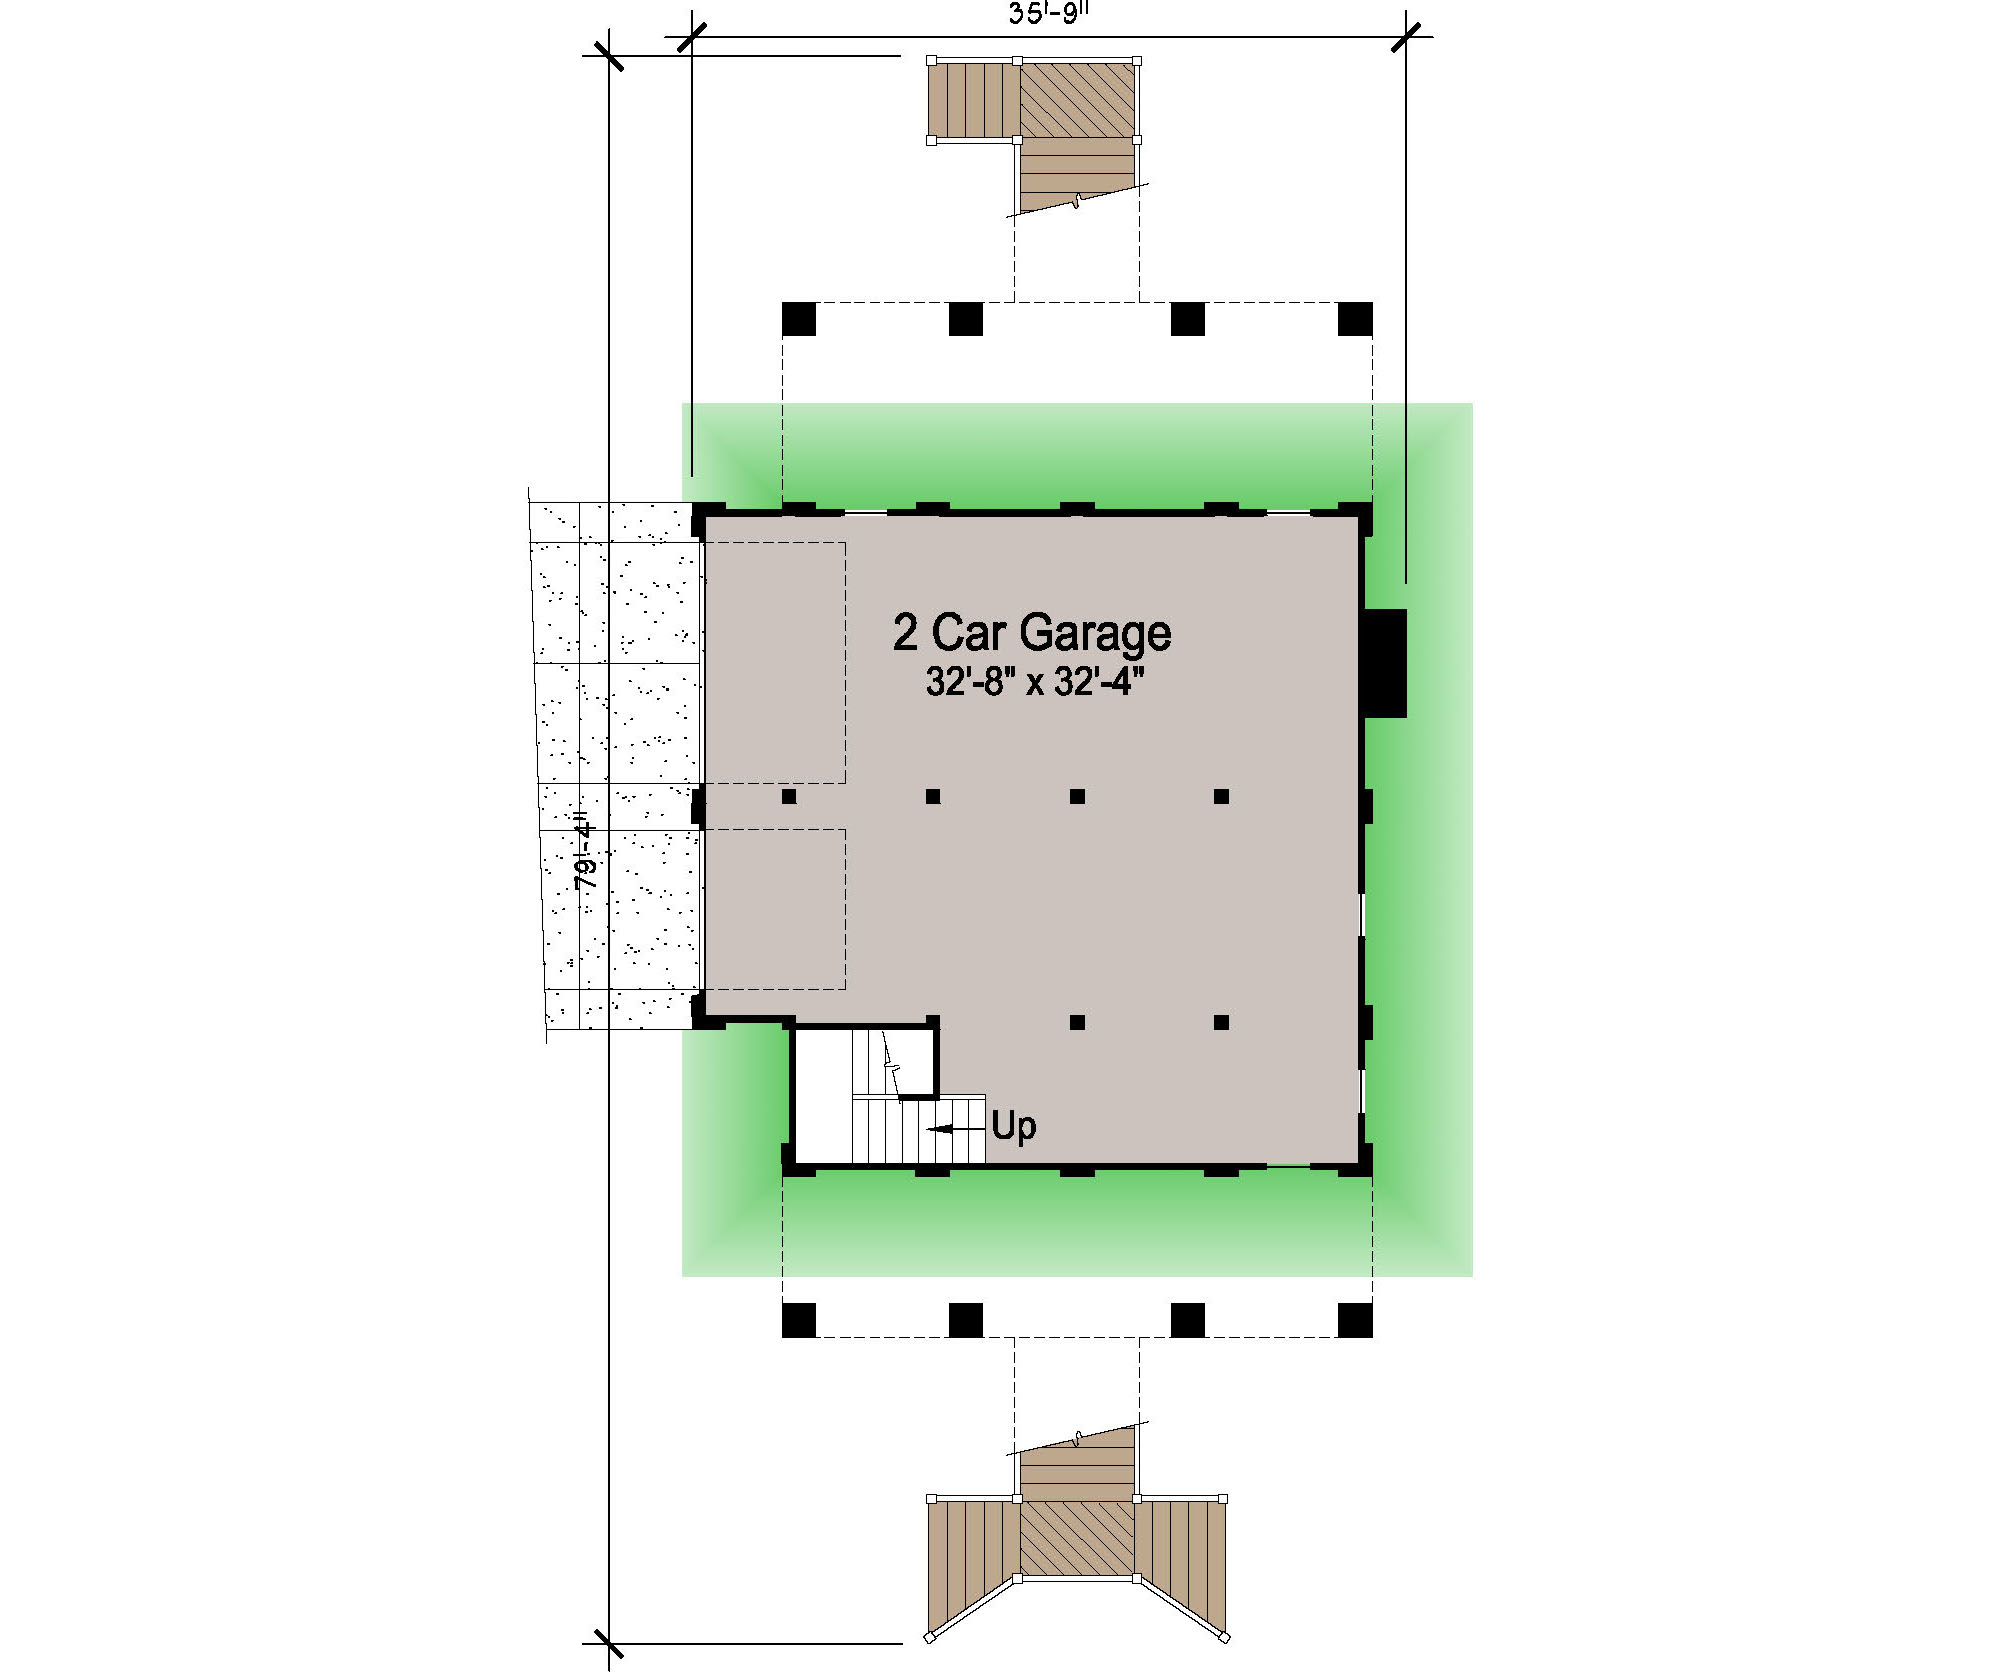 Inverted beach house plans 100 inverted beach house plans for Inverted house plans